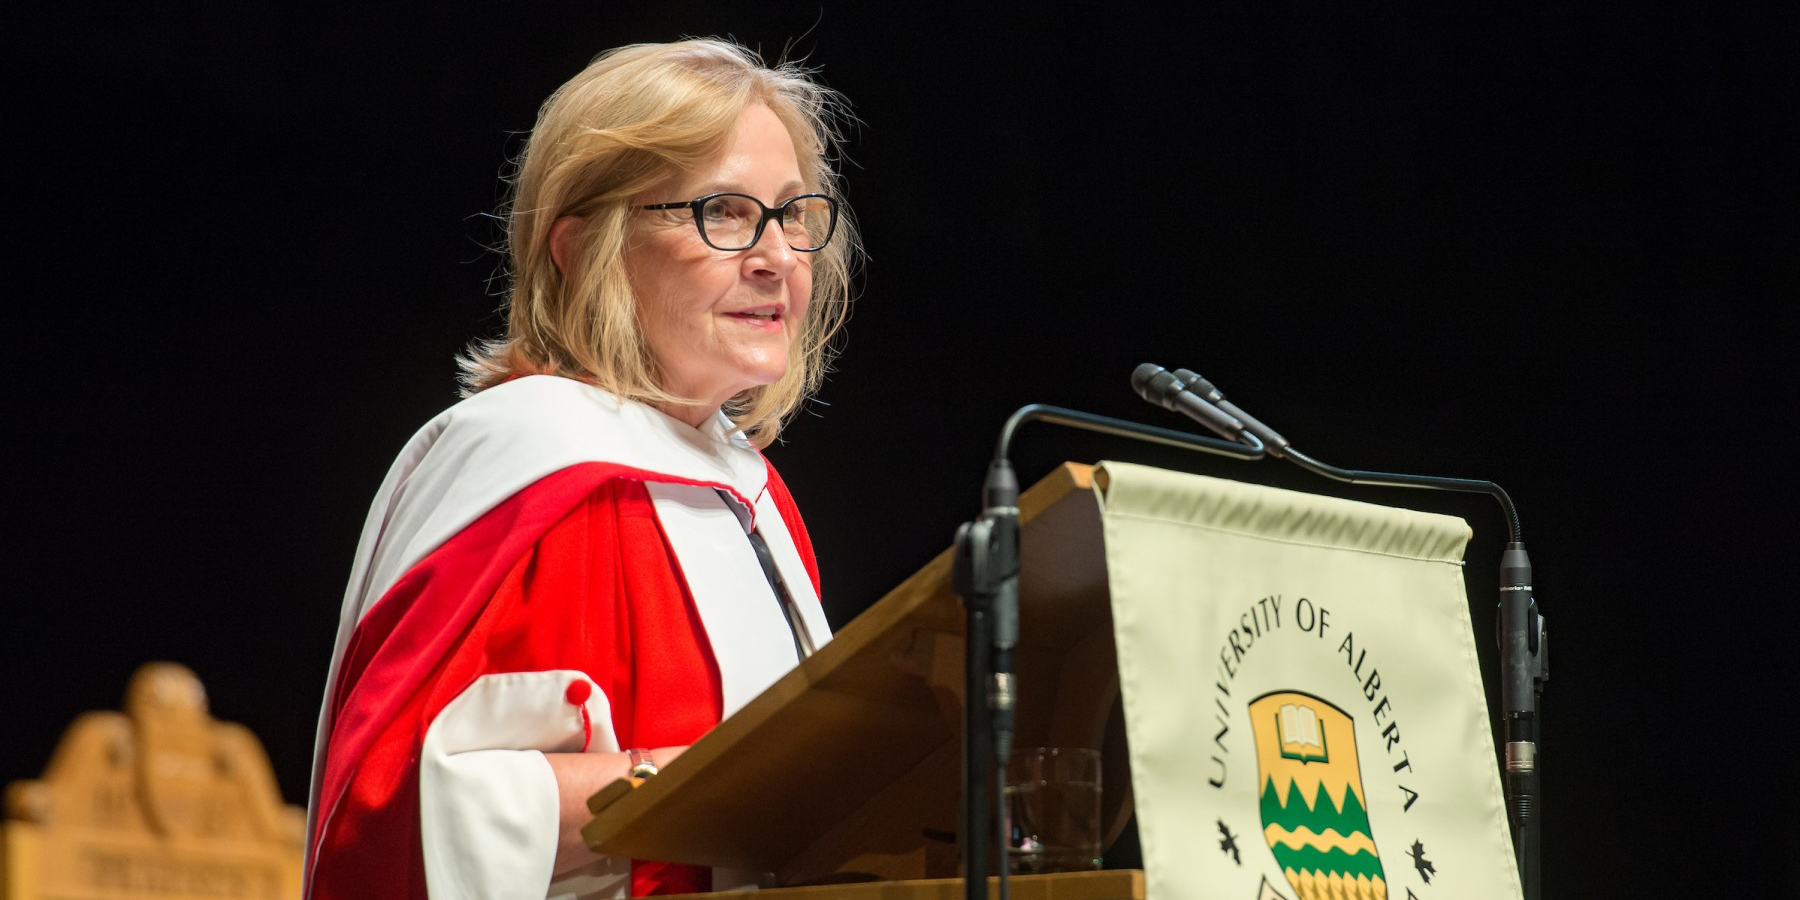 Truth and Reconciliation Commissioner Marie Wilson addresses graduands after receiving an honorary Doctor of Laws degree on June 8. (Photo by Richard Siemens)